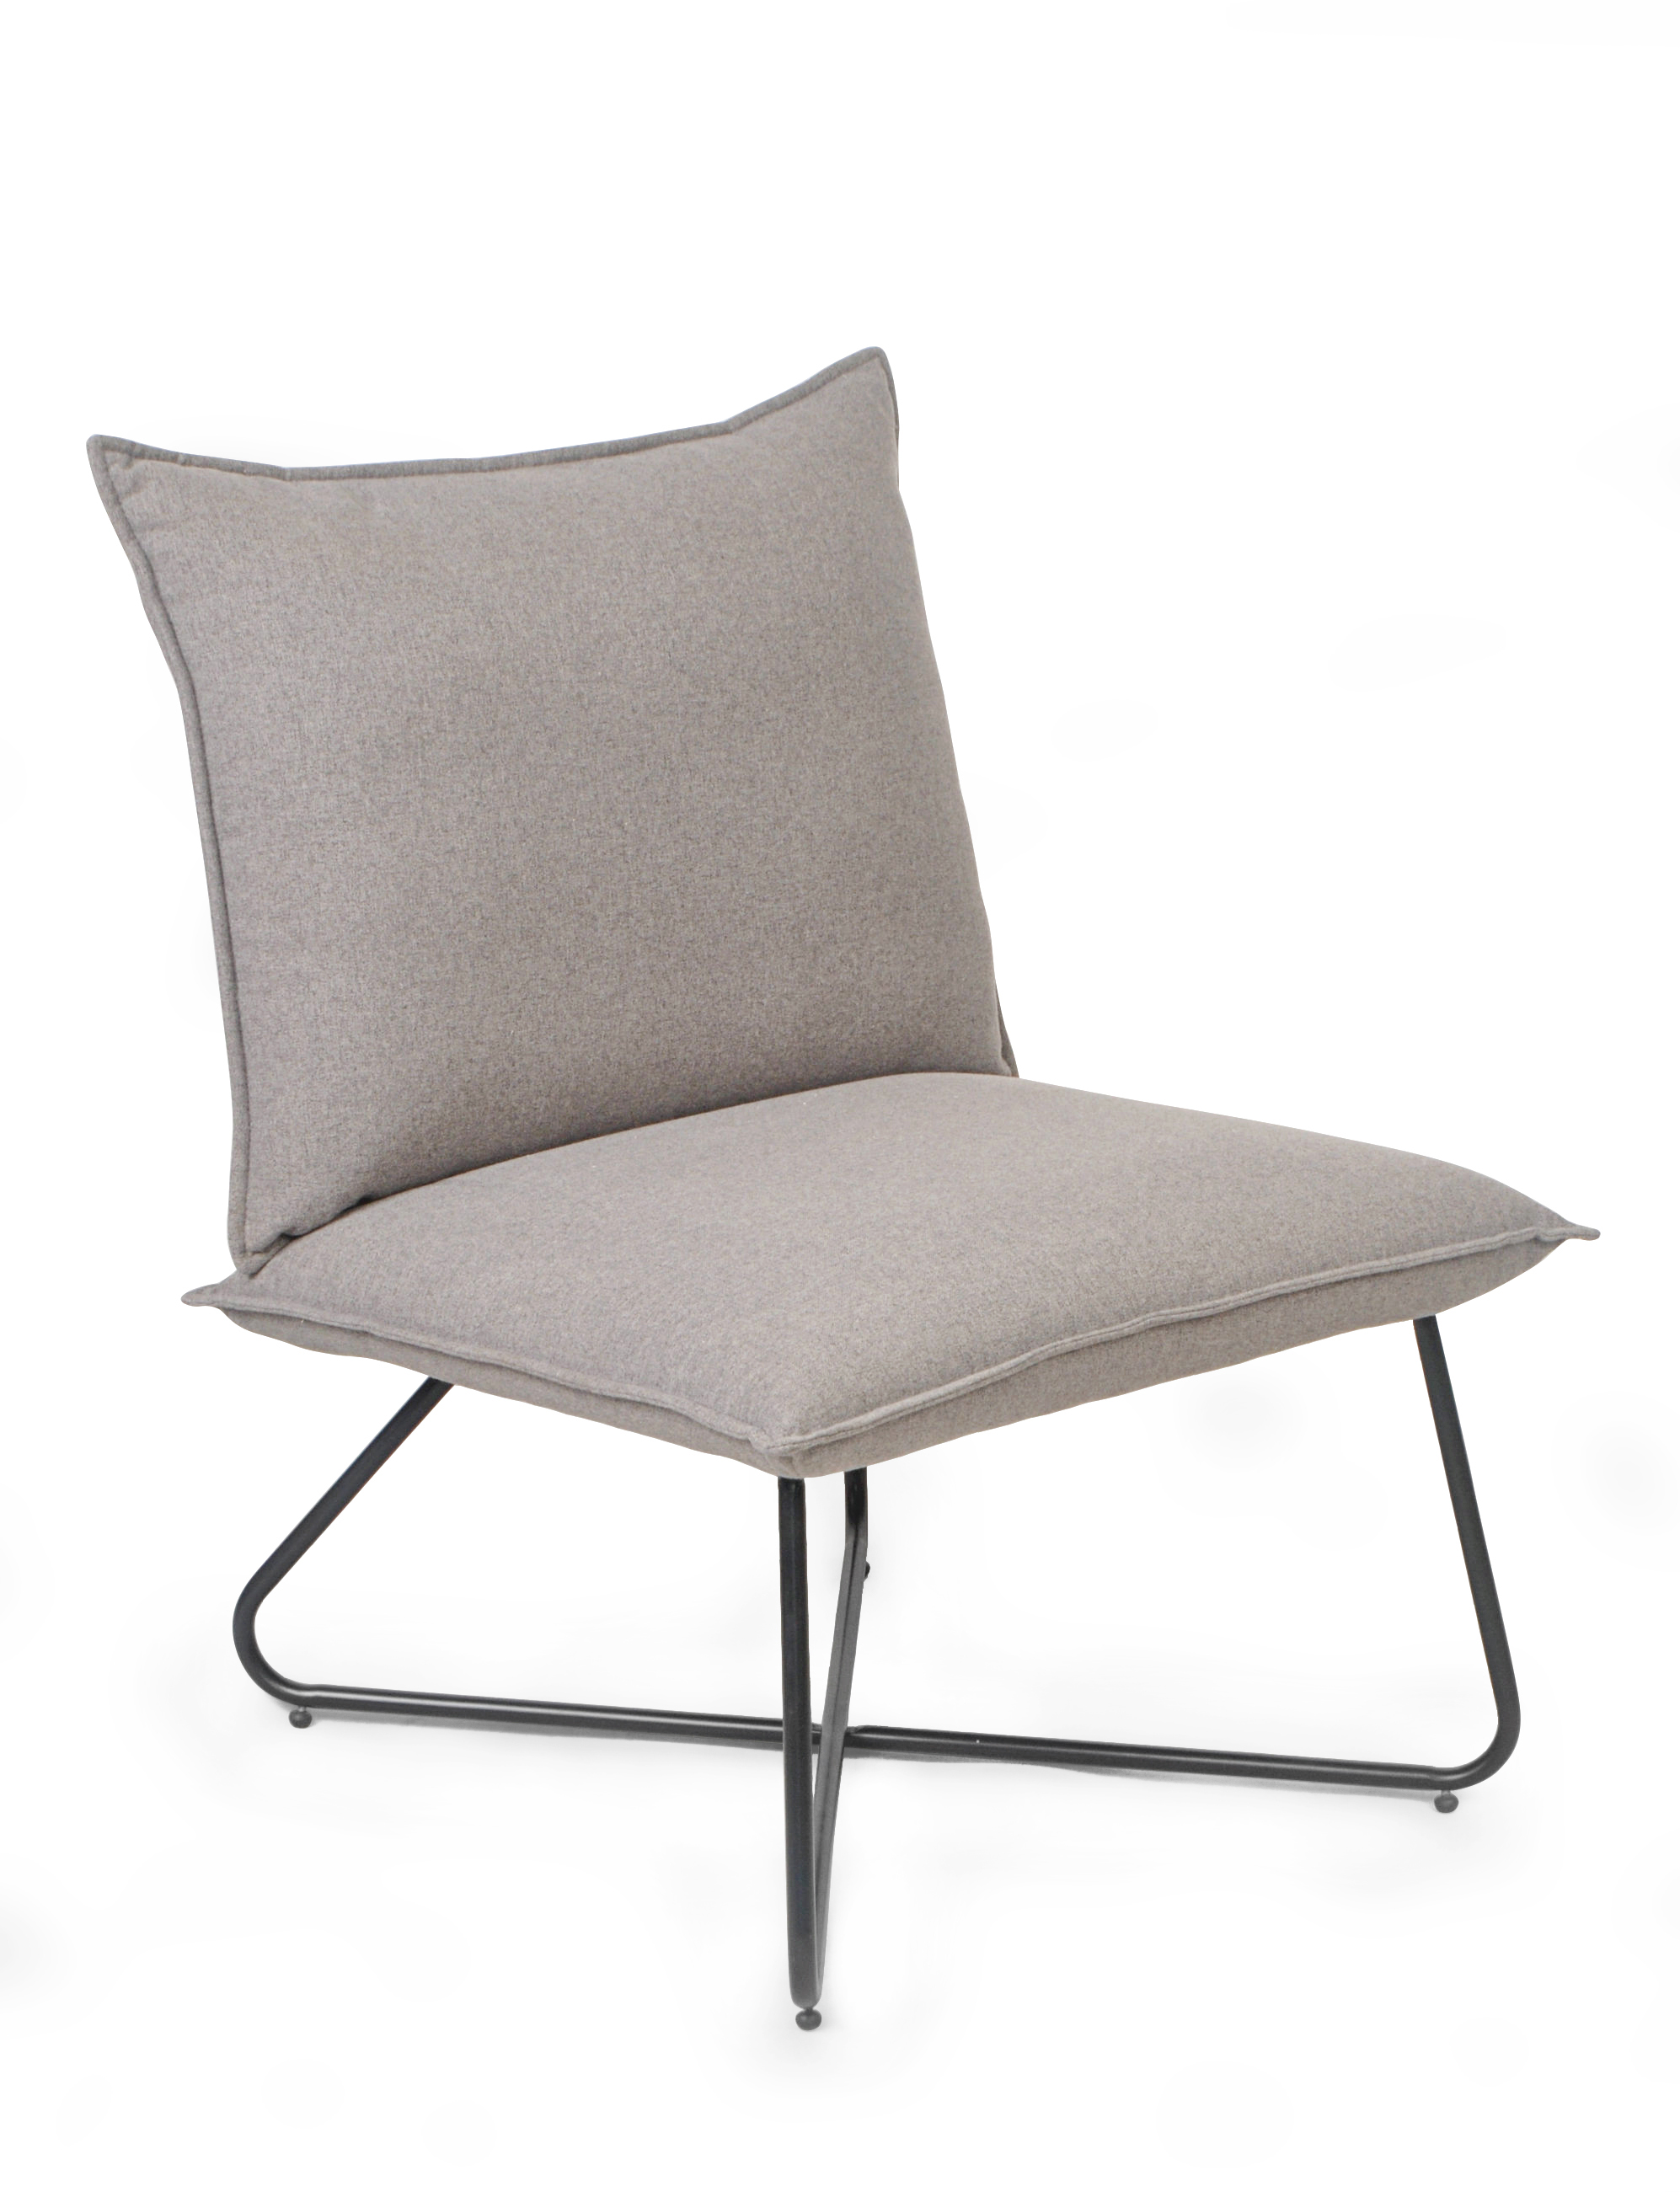 ID-LOW PHIL CROSS LEGS CHAIR WITH FOOTRE